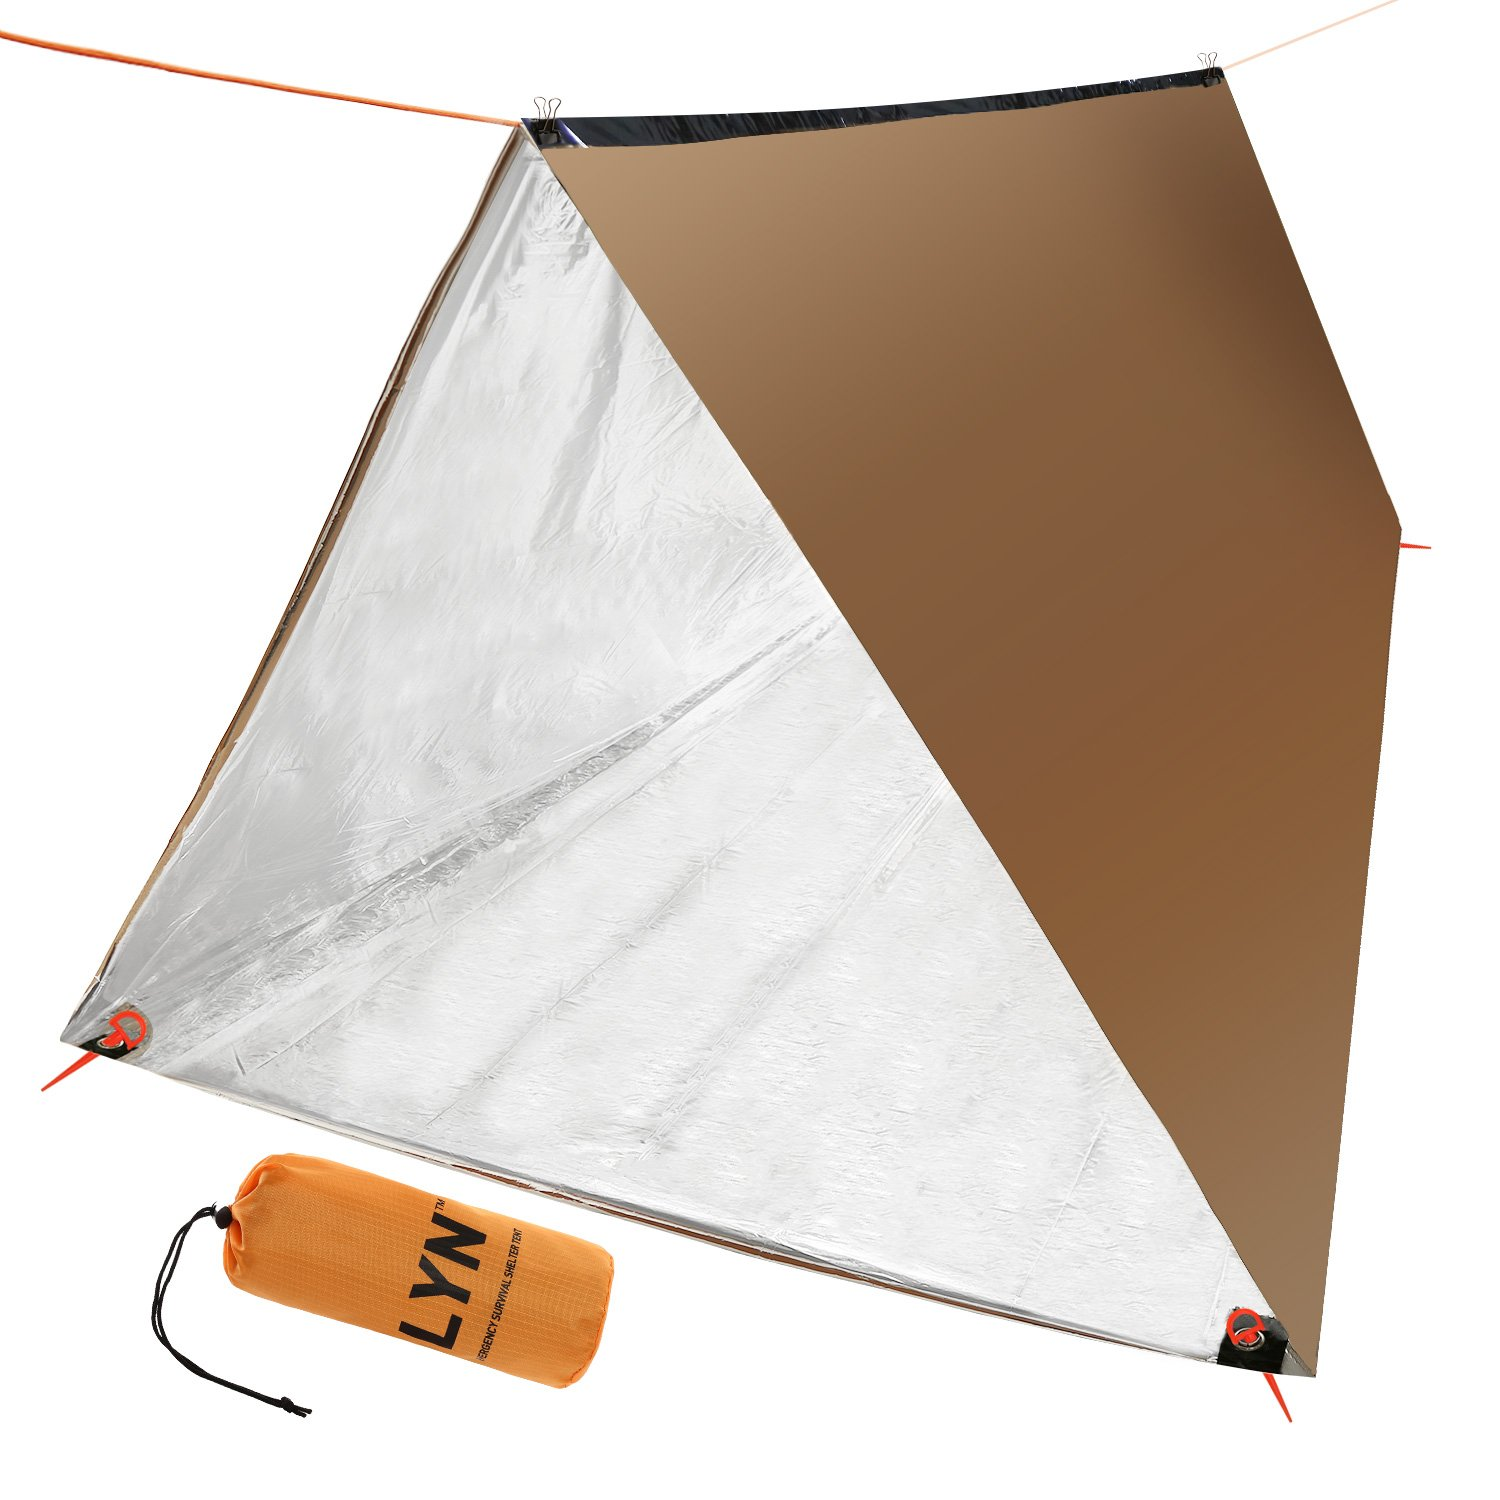 Emergency Survival Tent Mylar Thermal Waterproof for Camping Picnic 2 Person Bronze Tube Tent by LYN